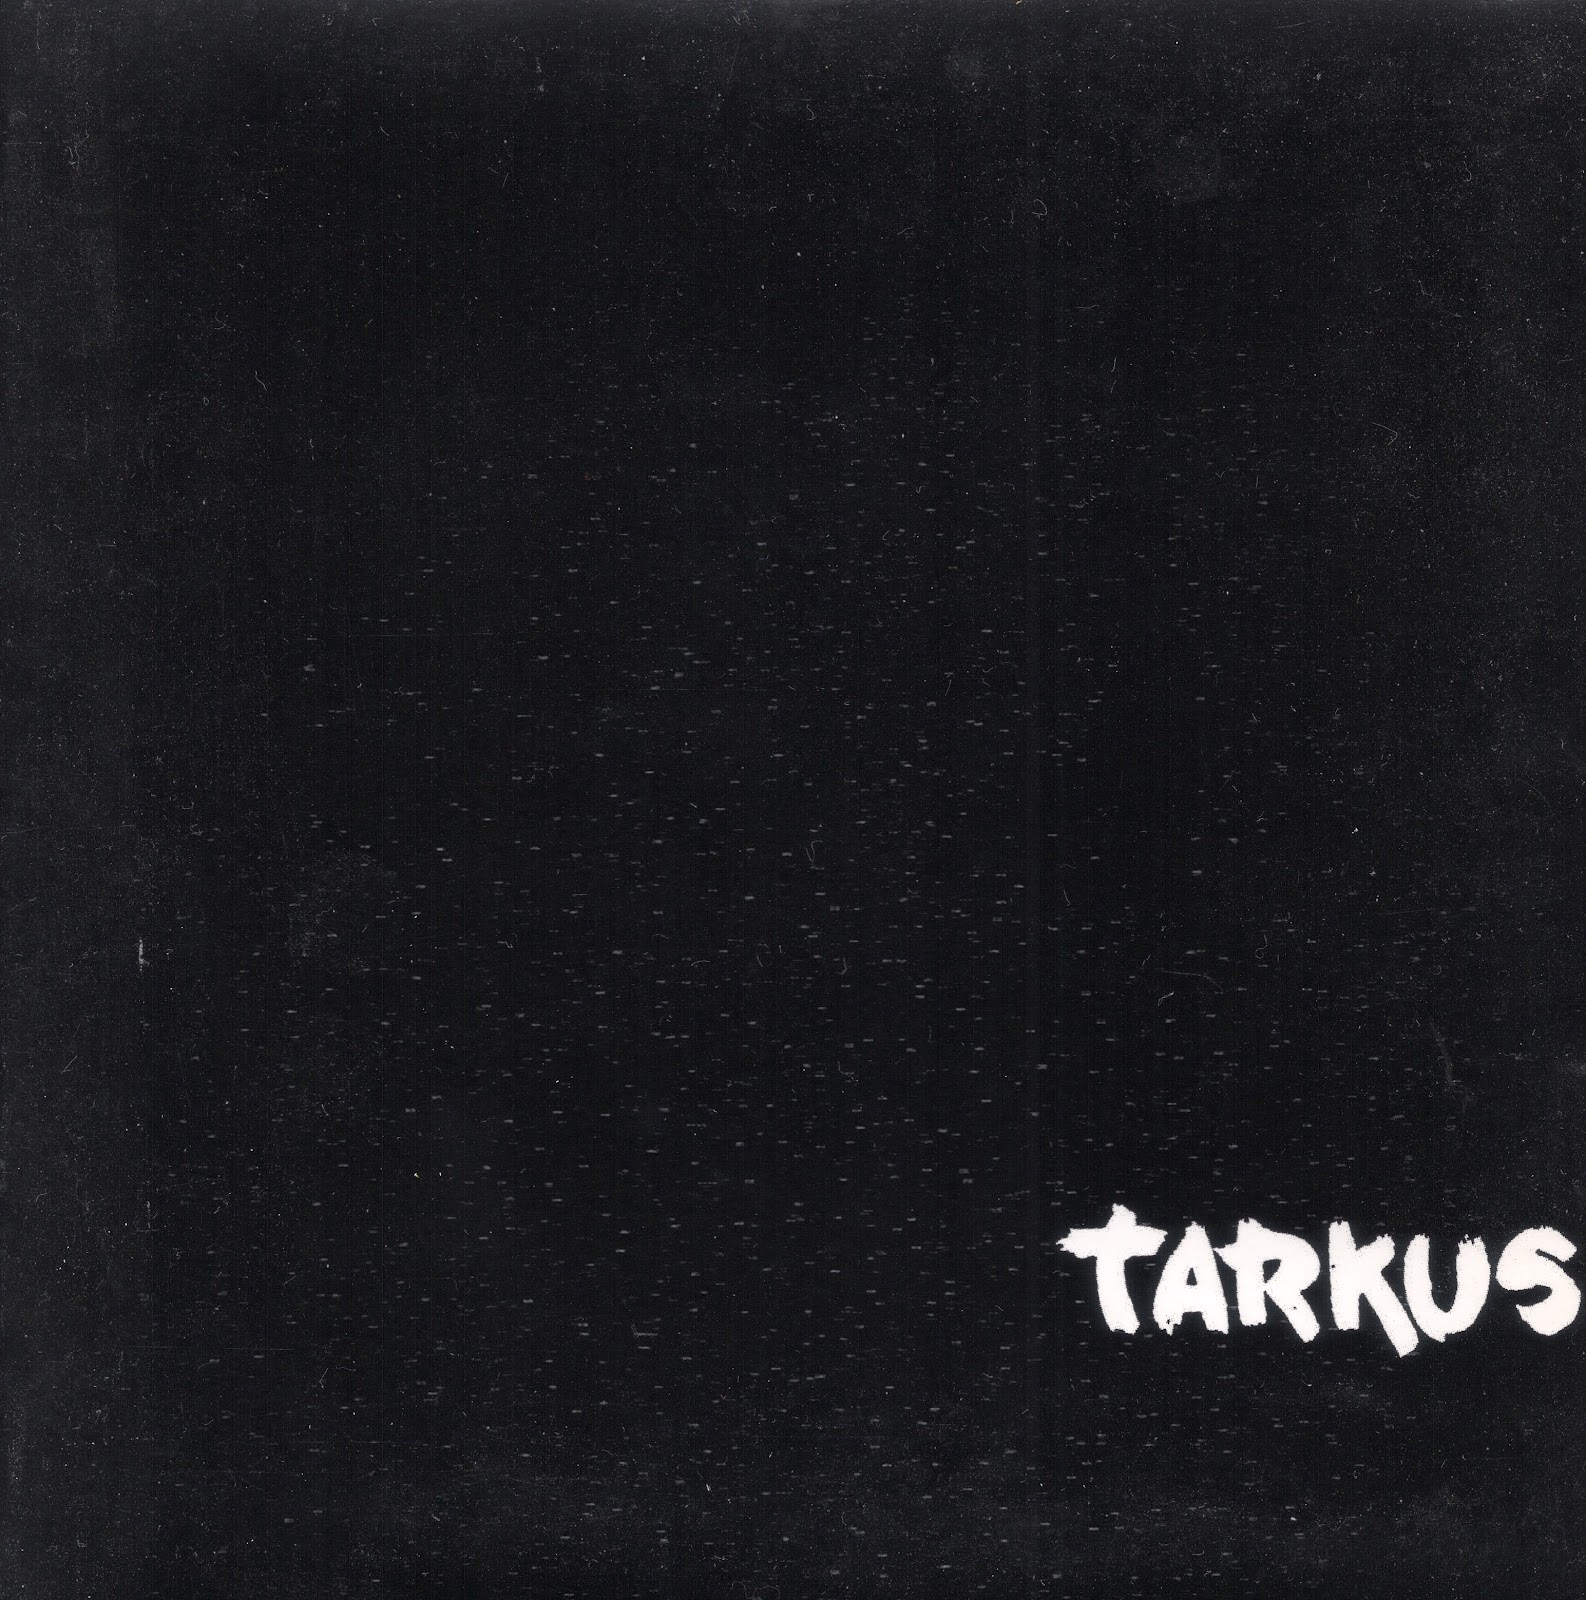 Tarkus - Tarkus (1972 peruvian, awesome hard/psychedelic rock) Flac